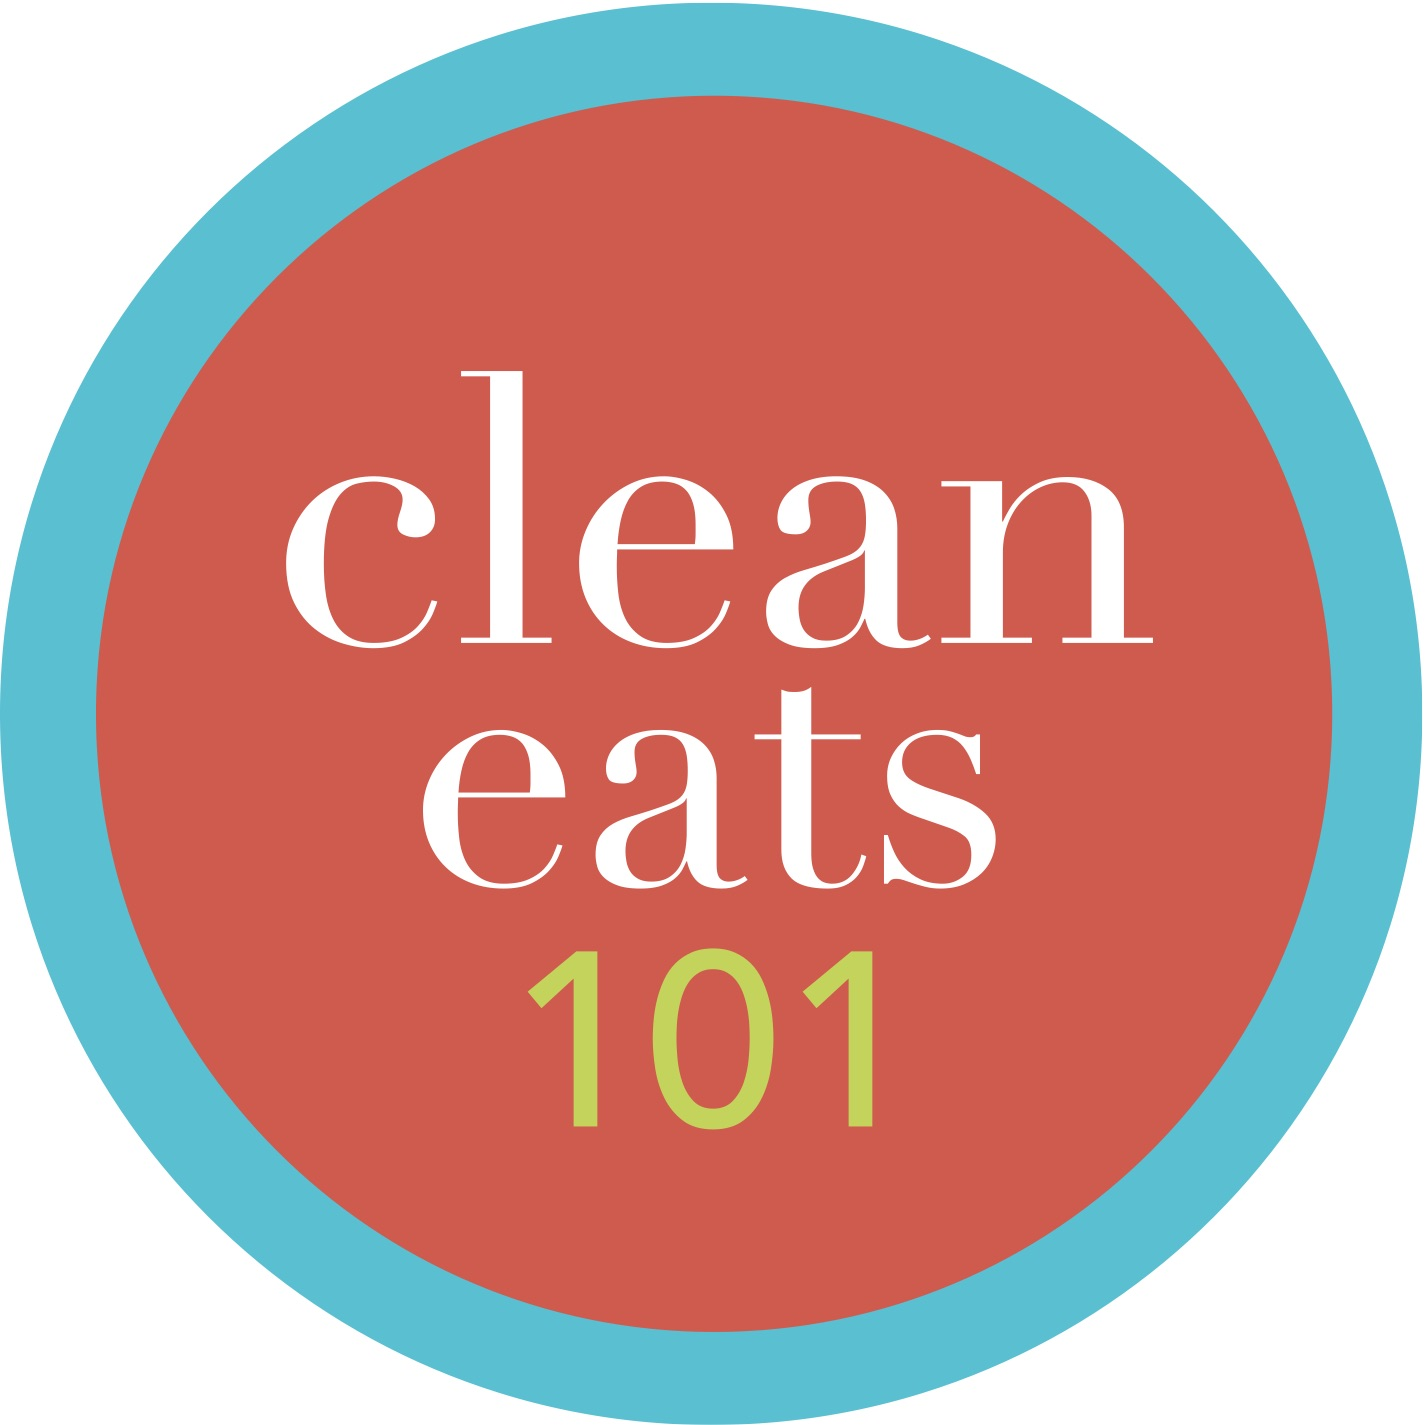 CleanEats101_logo 3.jpg